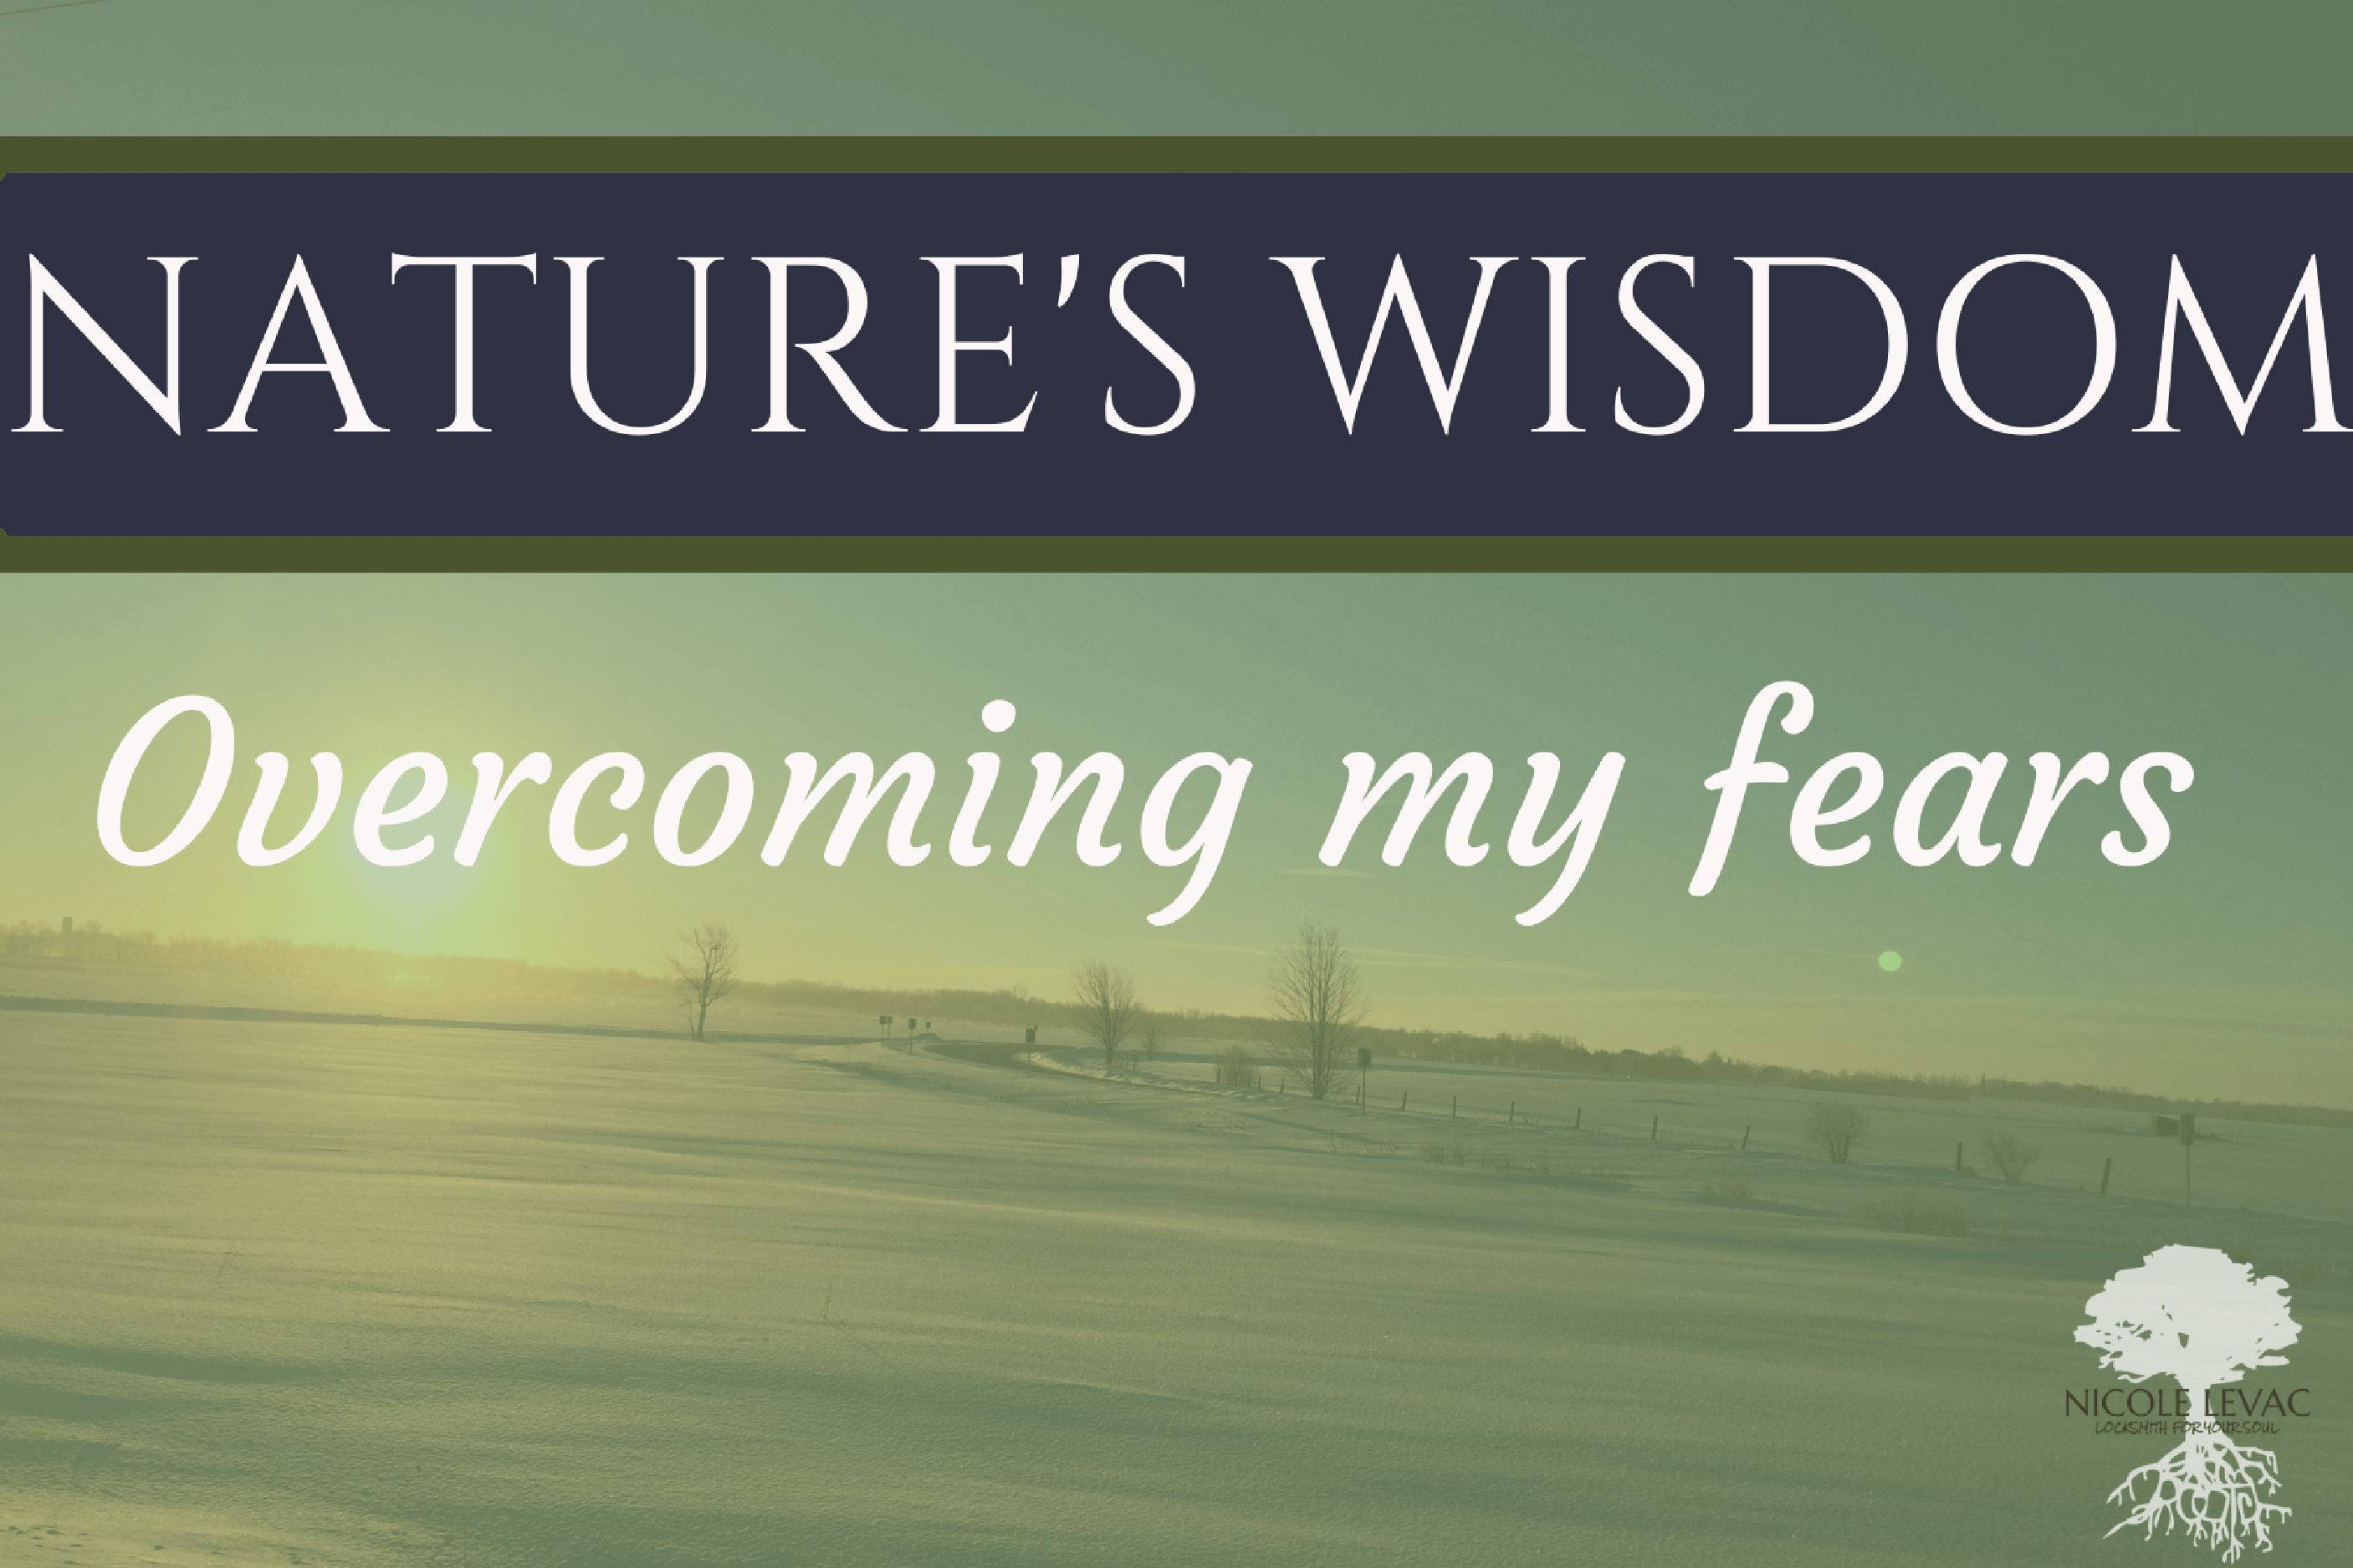 natures-wisdom-title-page-6-2